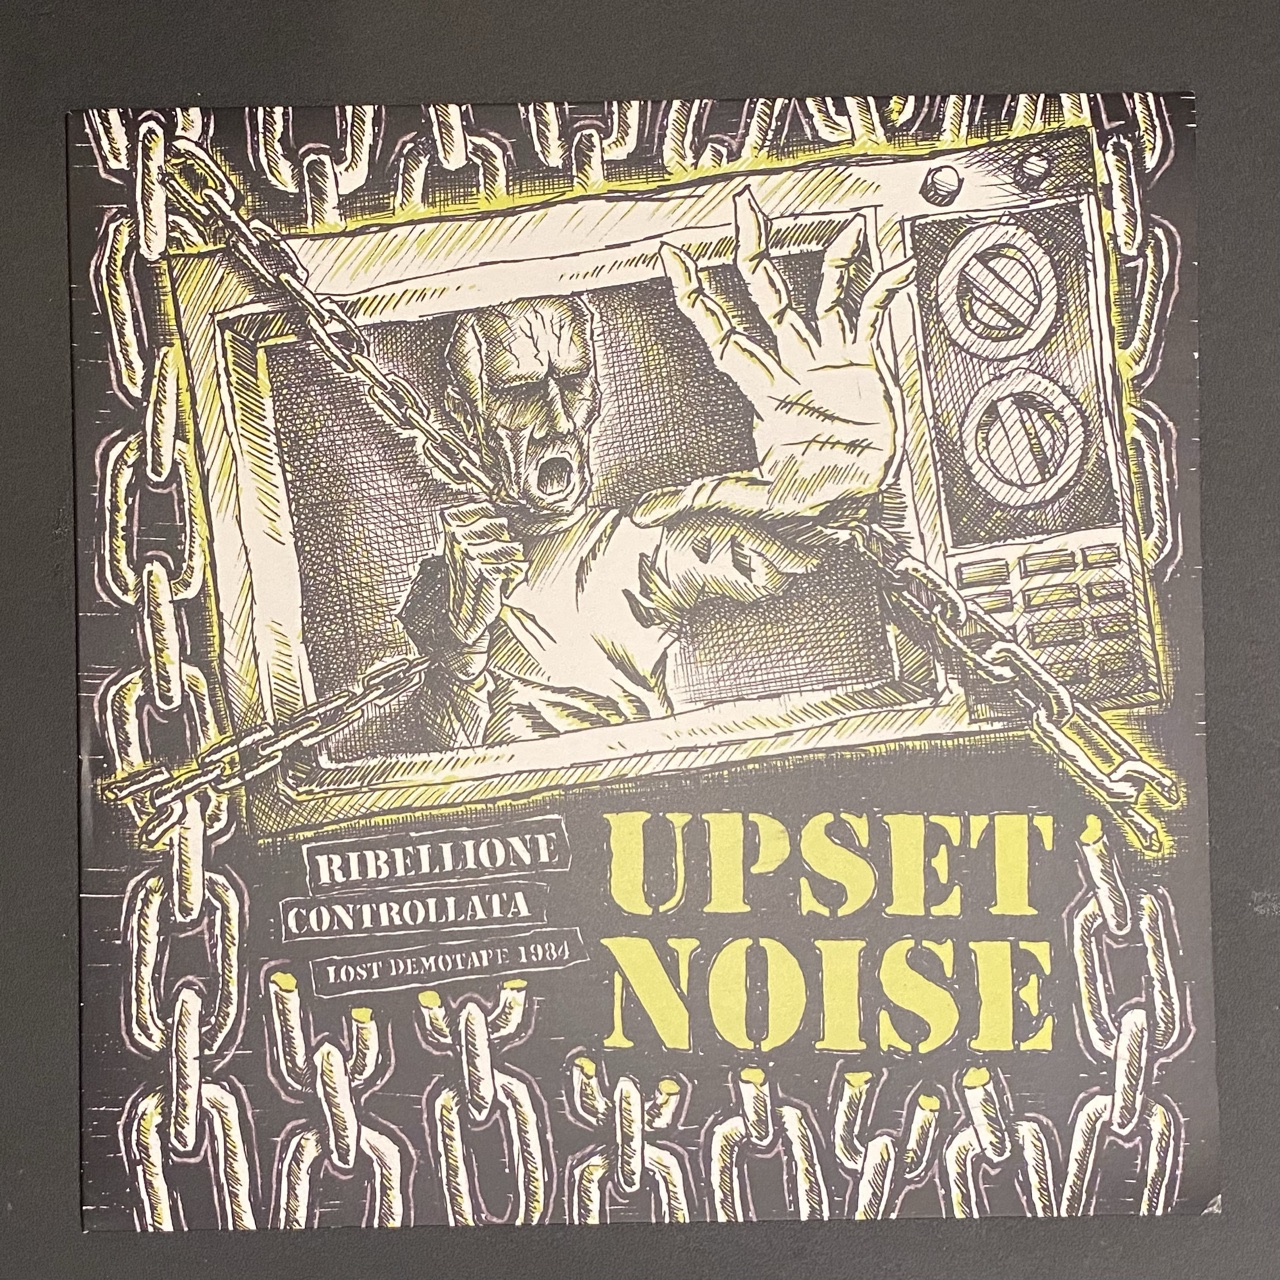 """*used* UPSET NOISE - Rebellione Controllata Lost Demo tape 1984 12"""" (one sided)"""